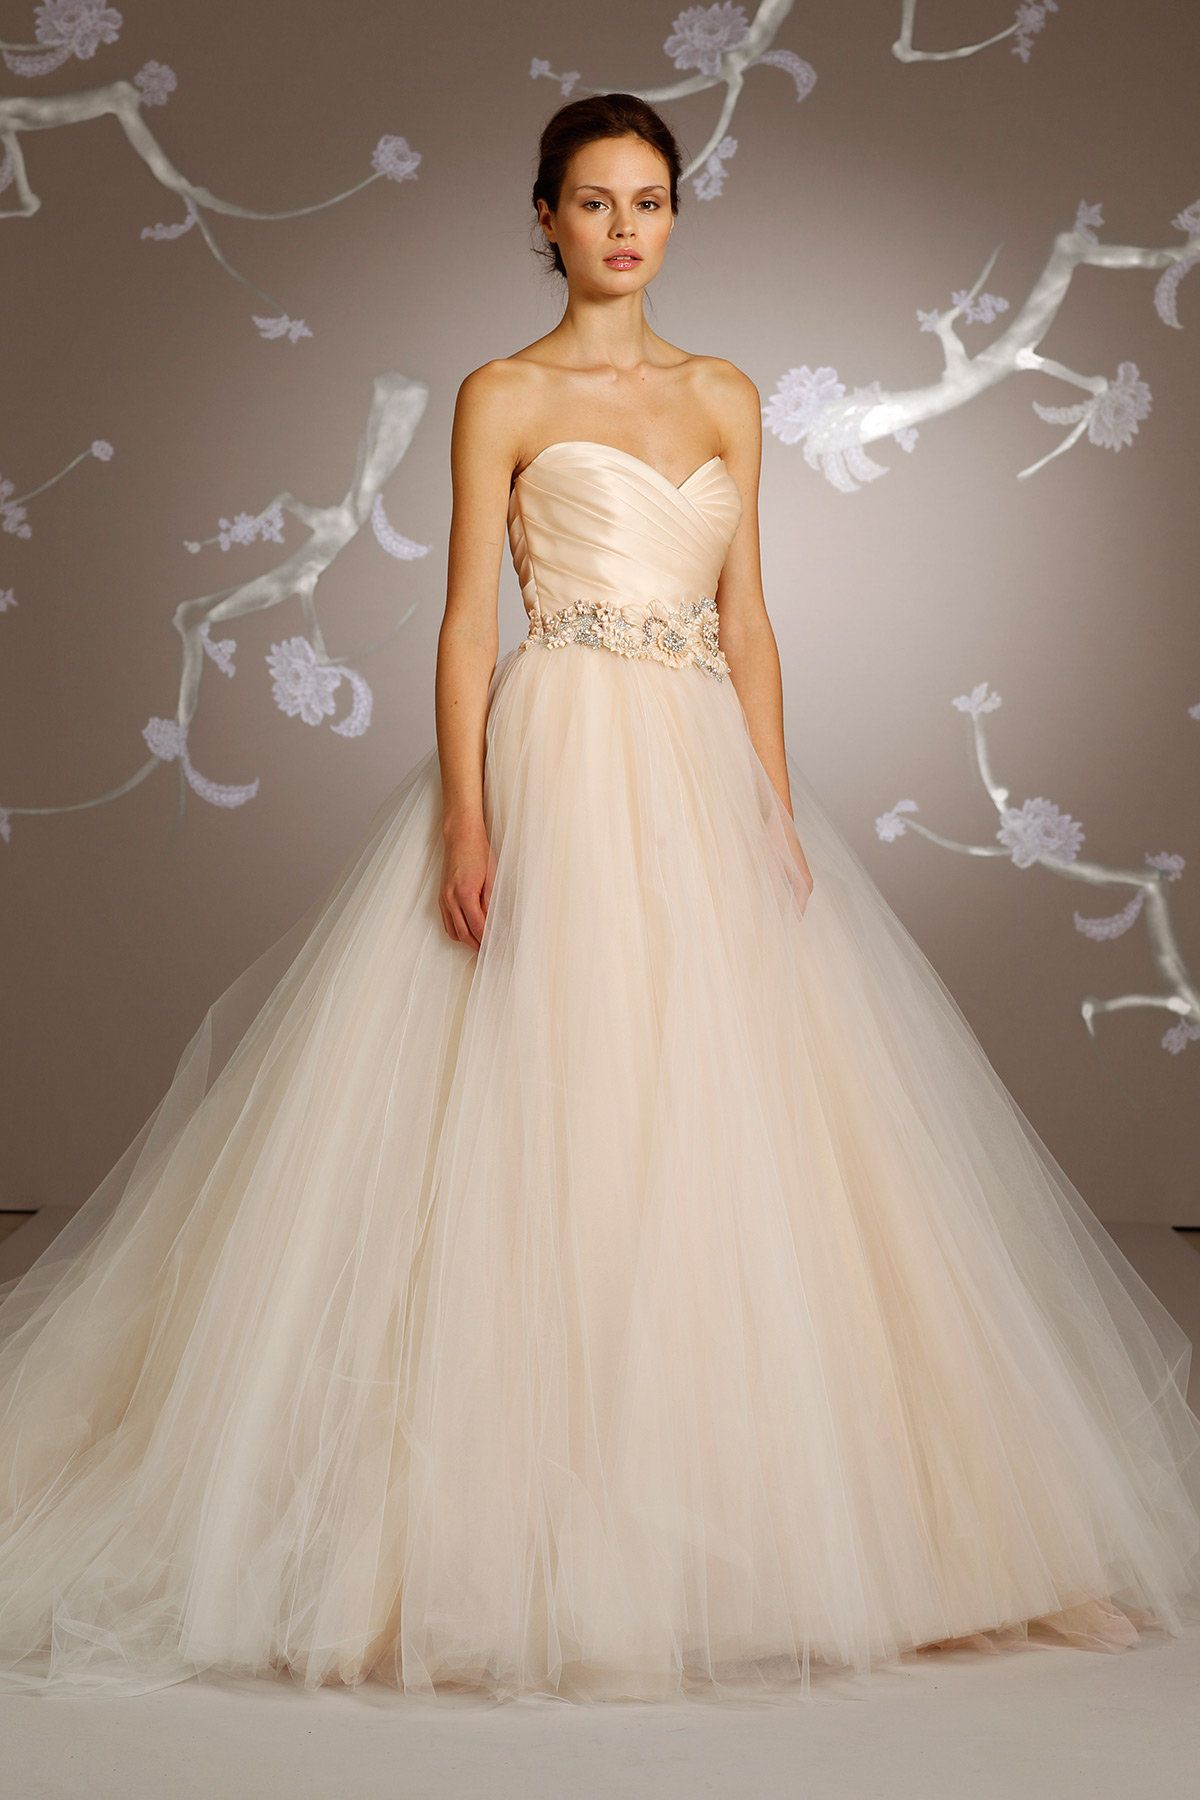 Sherbet Tulle Ball Bridal Gown Pleated Silk Satin Organza Bodice